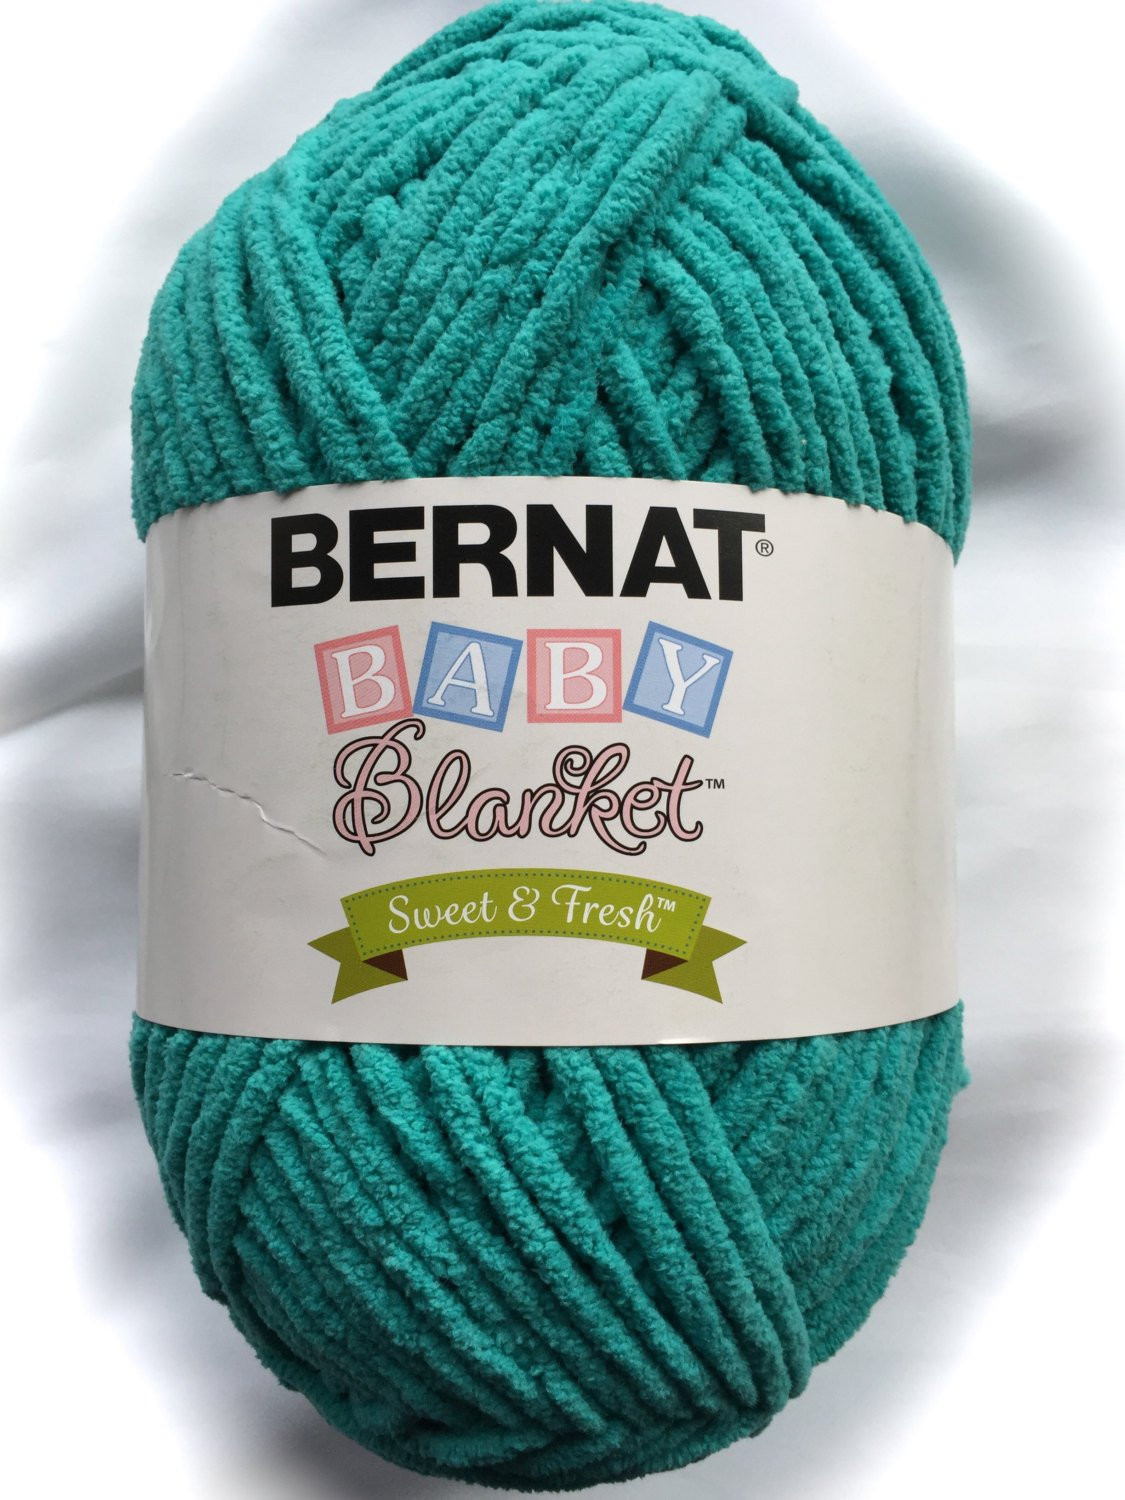 Bernat Blanket Yarn Luxury Grasshopper Bernat Baby Blanket Sweet & by Of Beautiful 42 Models Bernat Blanket Yarn